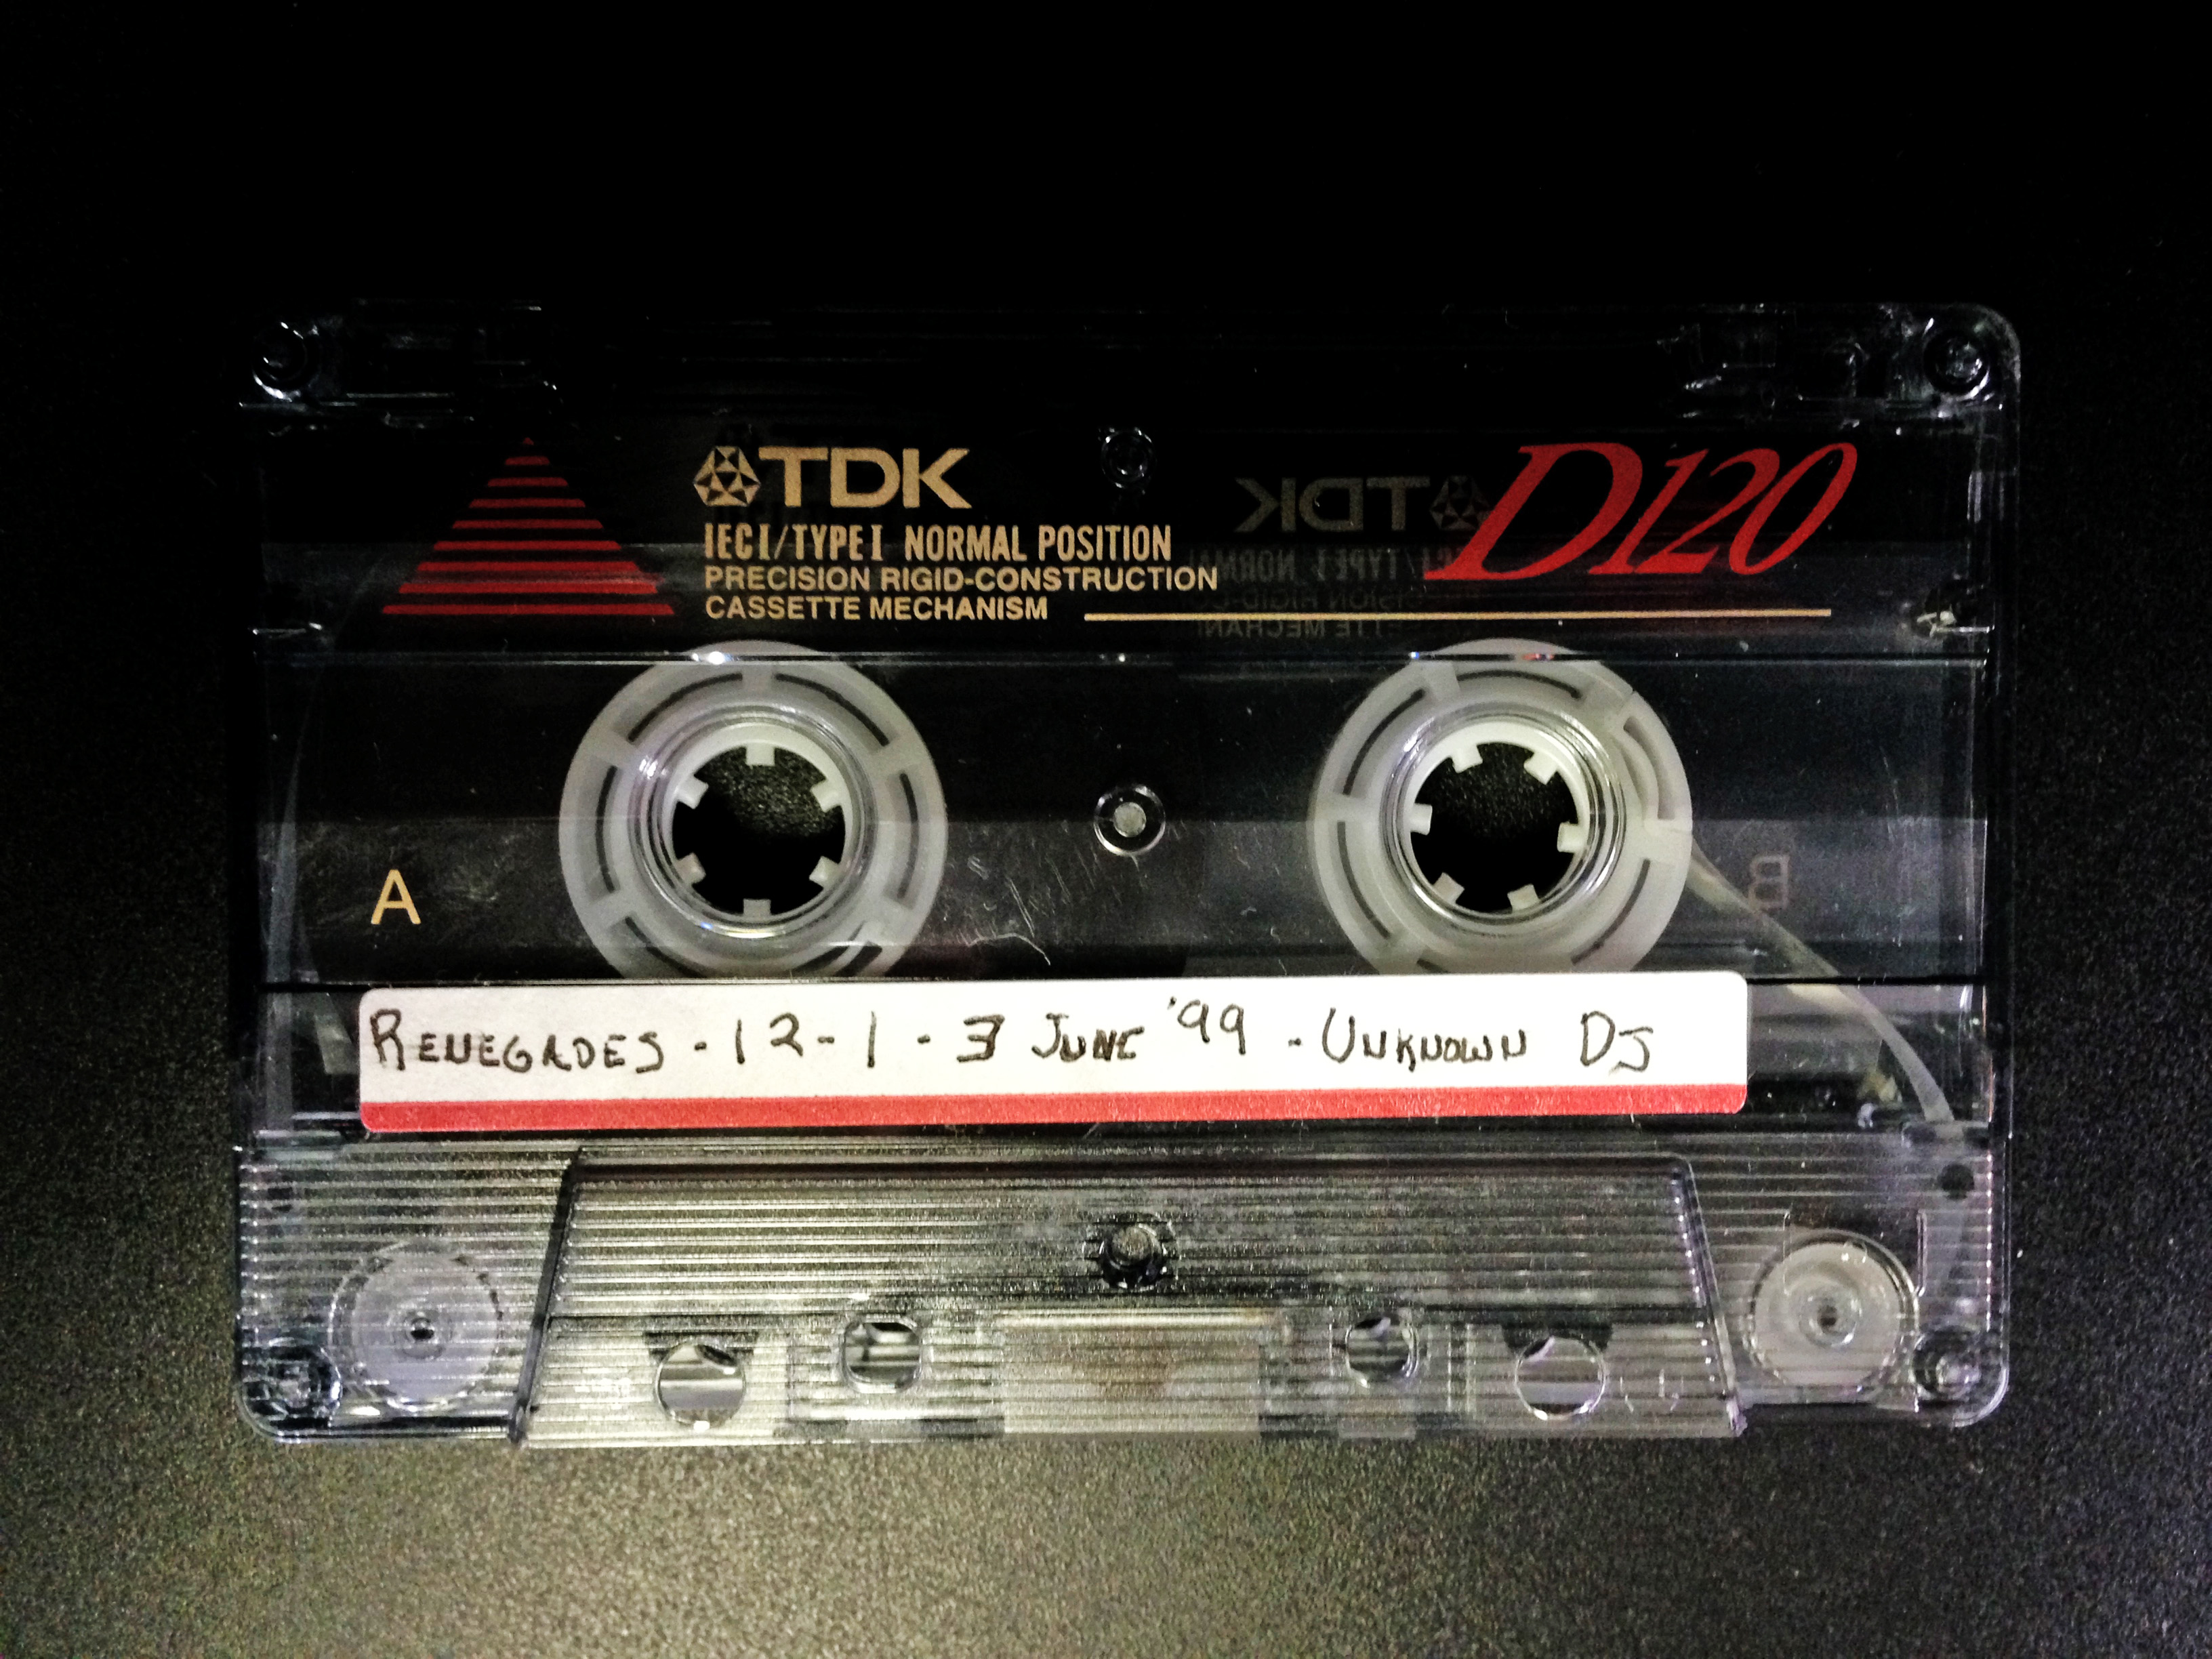 Original Unknown DJ's, The - Break Beats 8